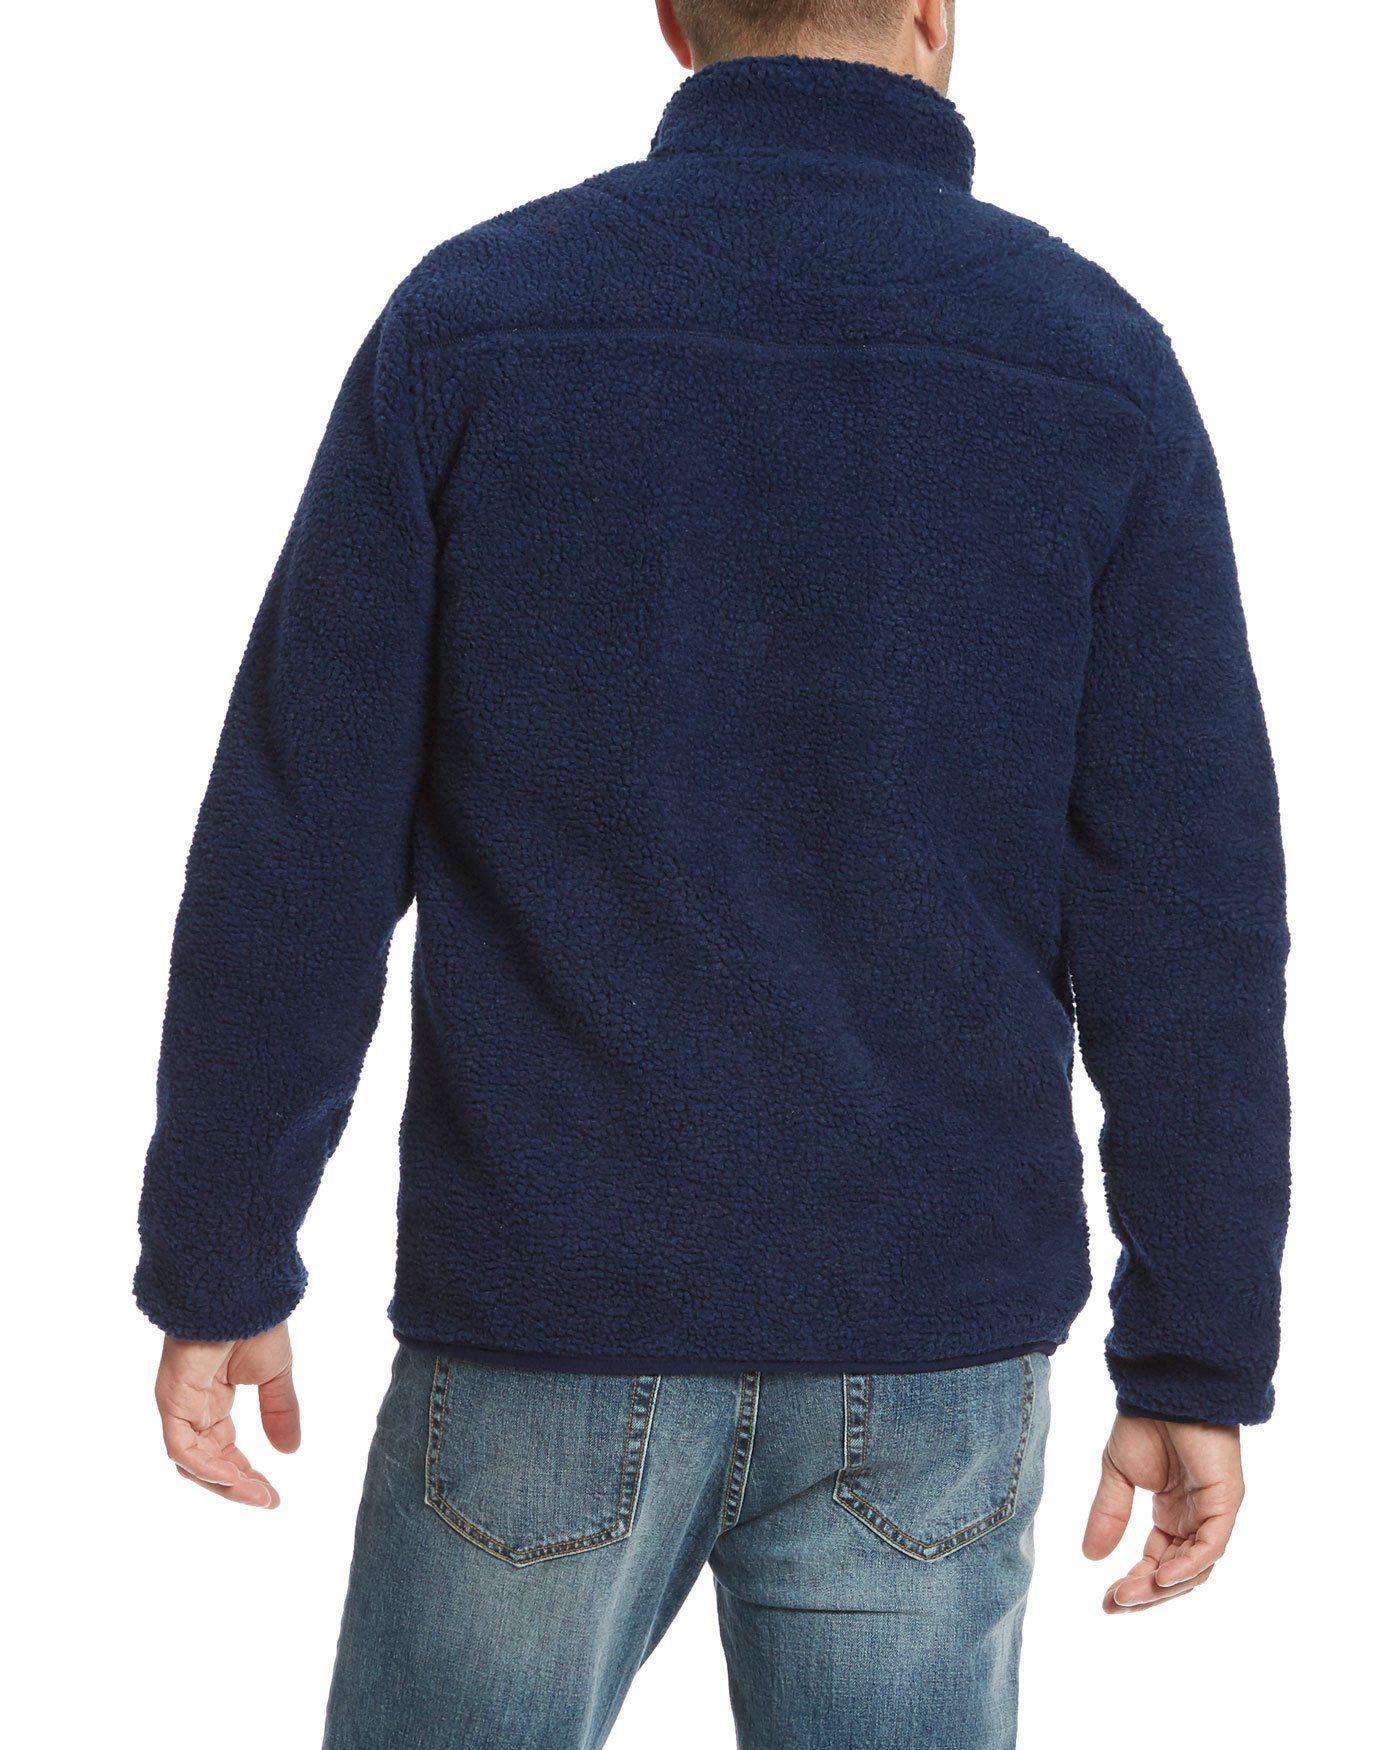 Jackets - VINSON SHERPA JACKET - NAVY